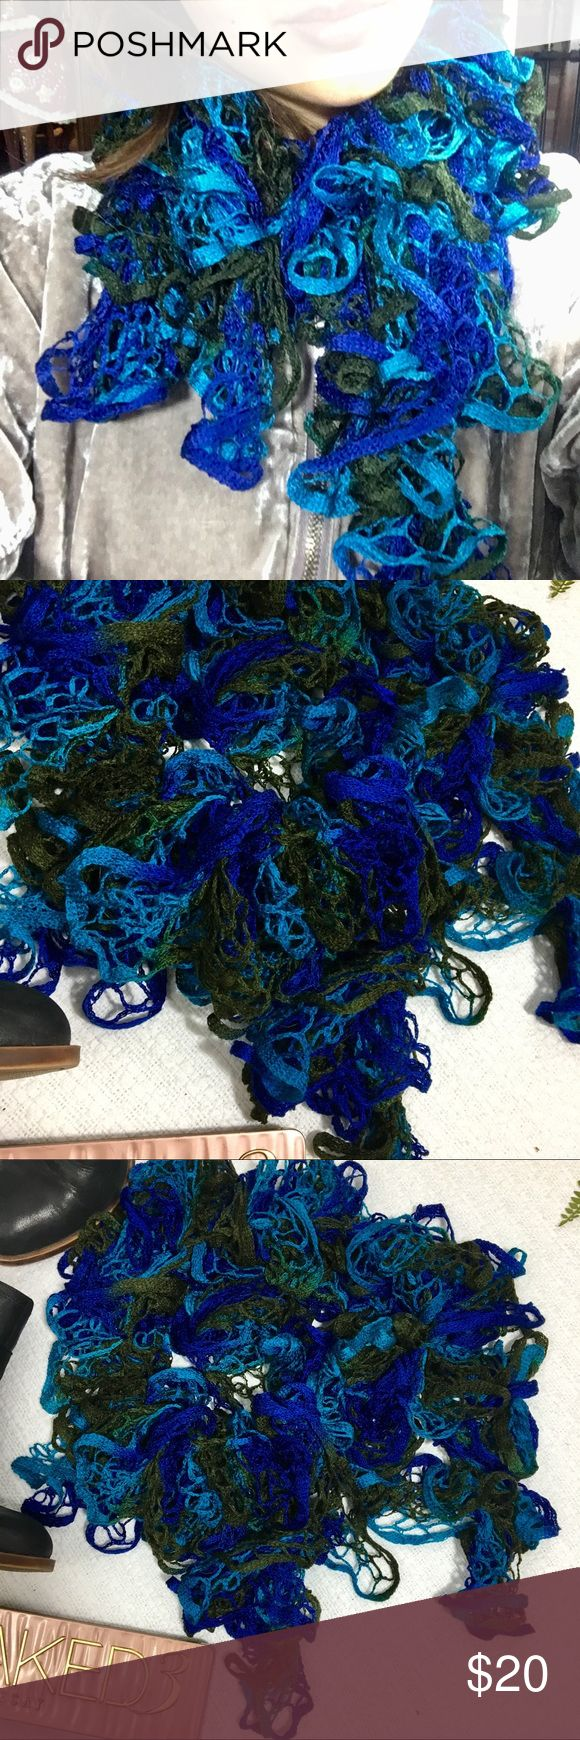 Blue Ruffle Knit Lace Scarf This is such a beautiful fun scarf. Two different tones of blue are mixed in with an olive green. It is a stretchy knit lace material that looks gorgeous and has some bounce. EUC 💕 Accessories Scarves & Wraps